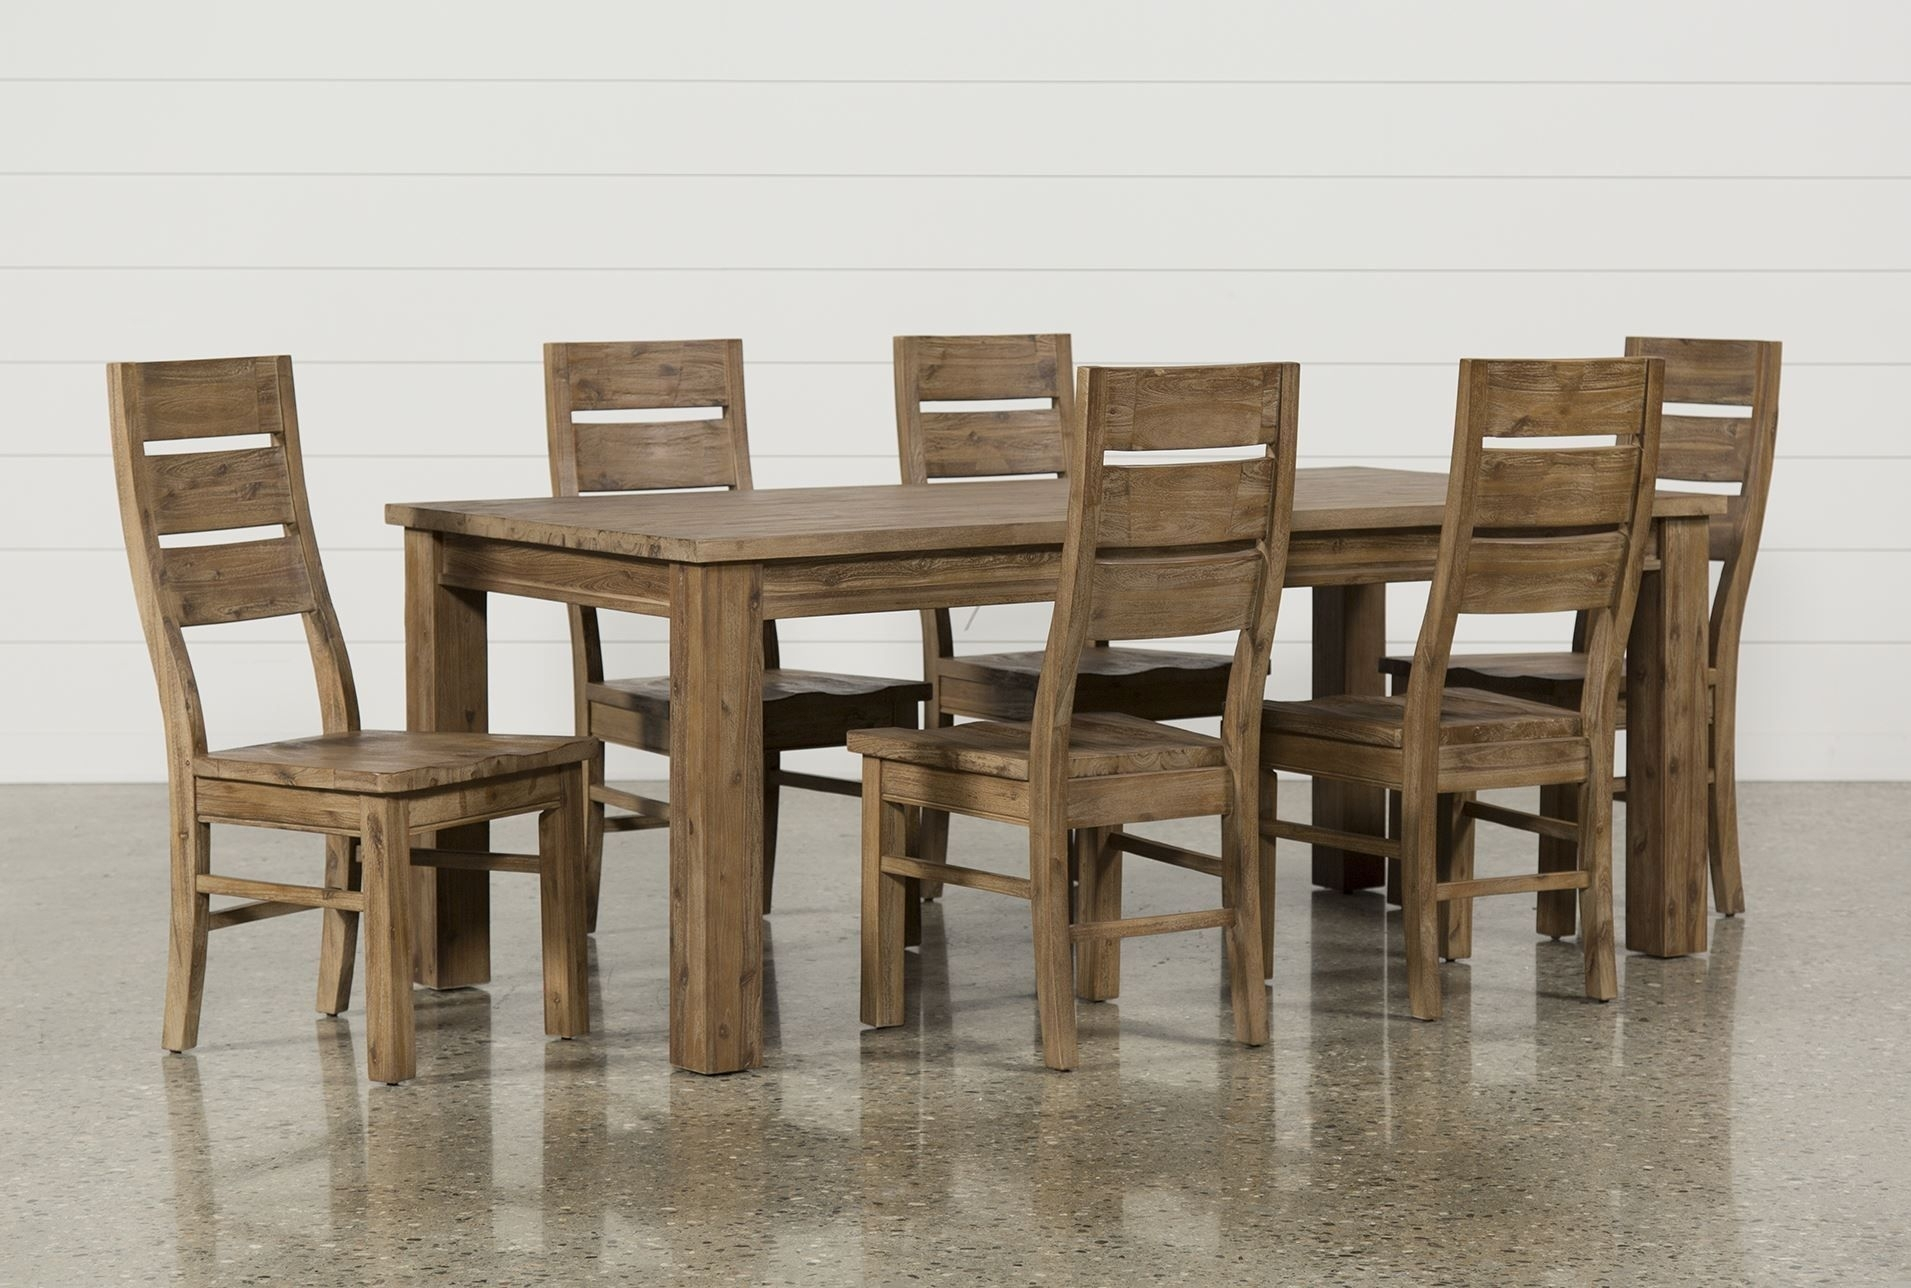 Erickson 7 Piece Dining Set, Brown | Dining, Kitchen Stuff And With Regard To Most Recent Amos 7 Piece Extension Dining Sets (View 3 of 20)